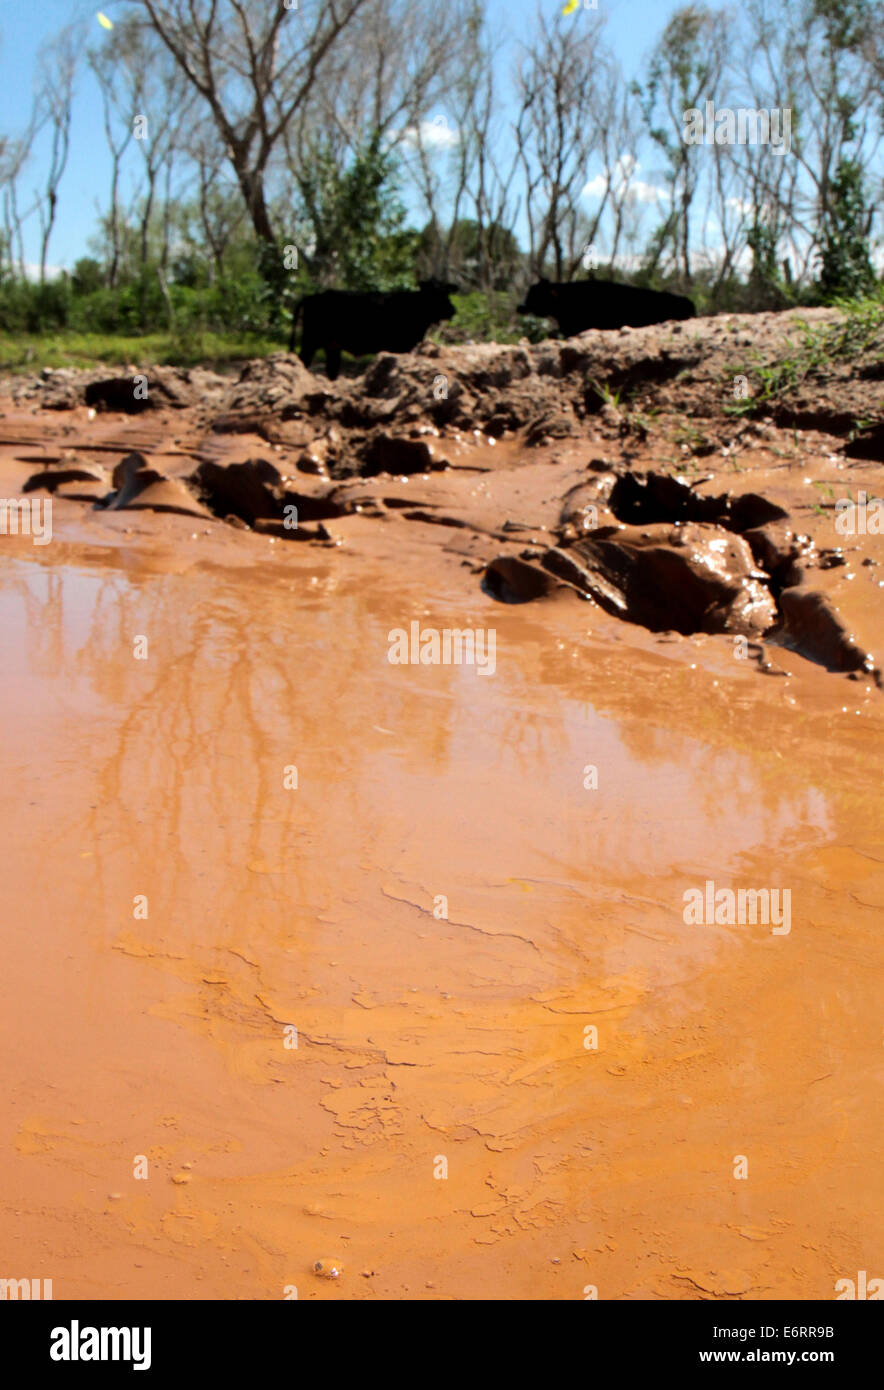 (140830) -- SONORA, Aug. 30, 2014 (Xinhua) -- Image taken on Aug. 12, 2014, shows the Sonora River affected after - Stock Image